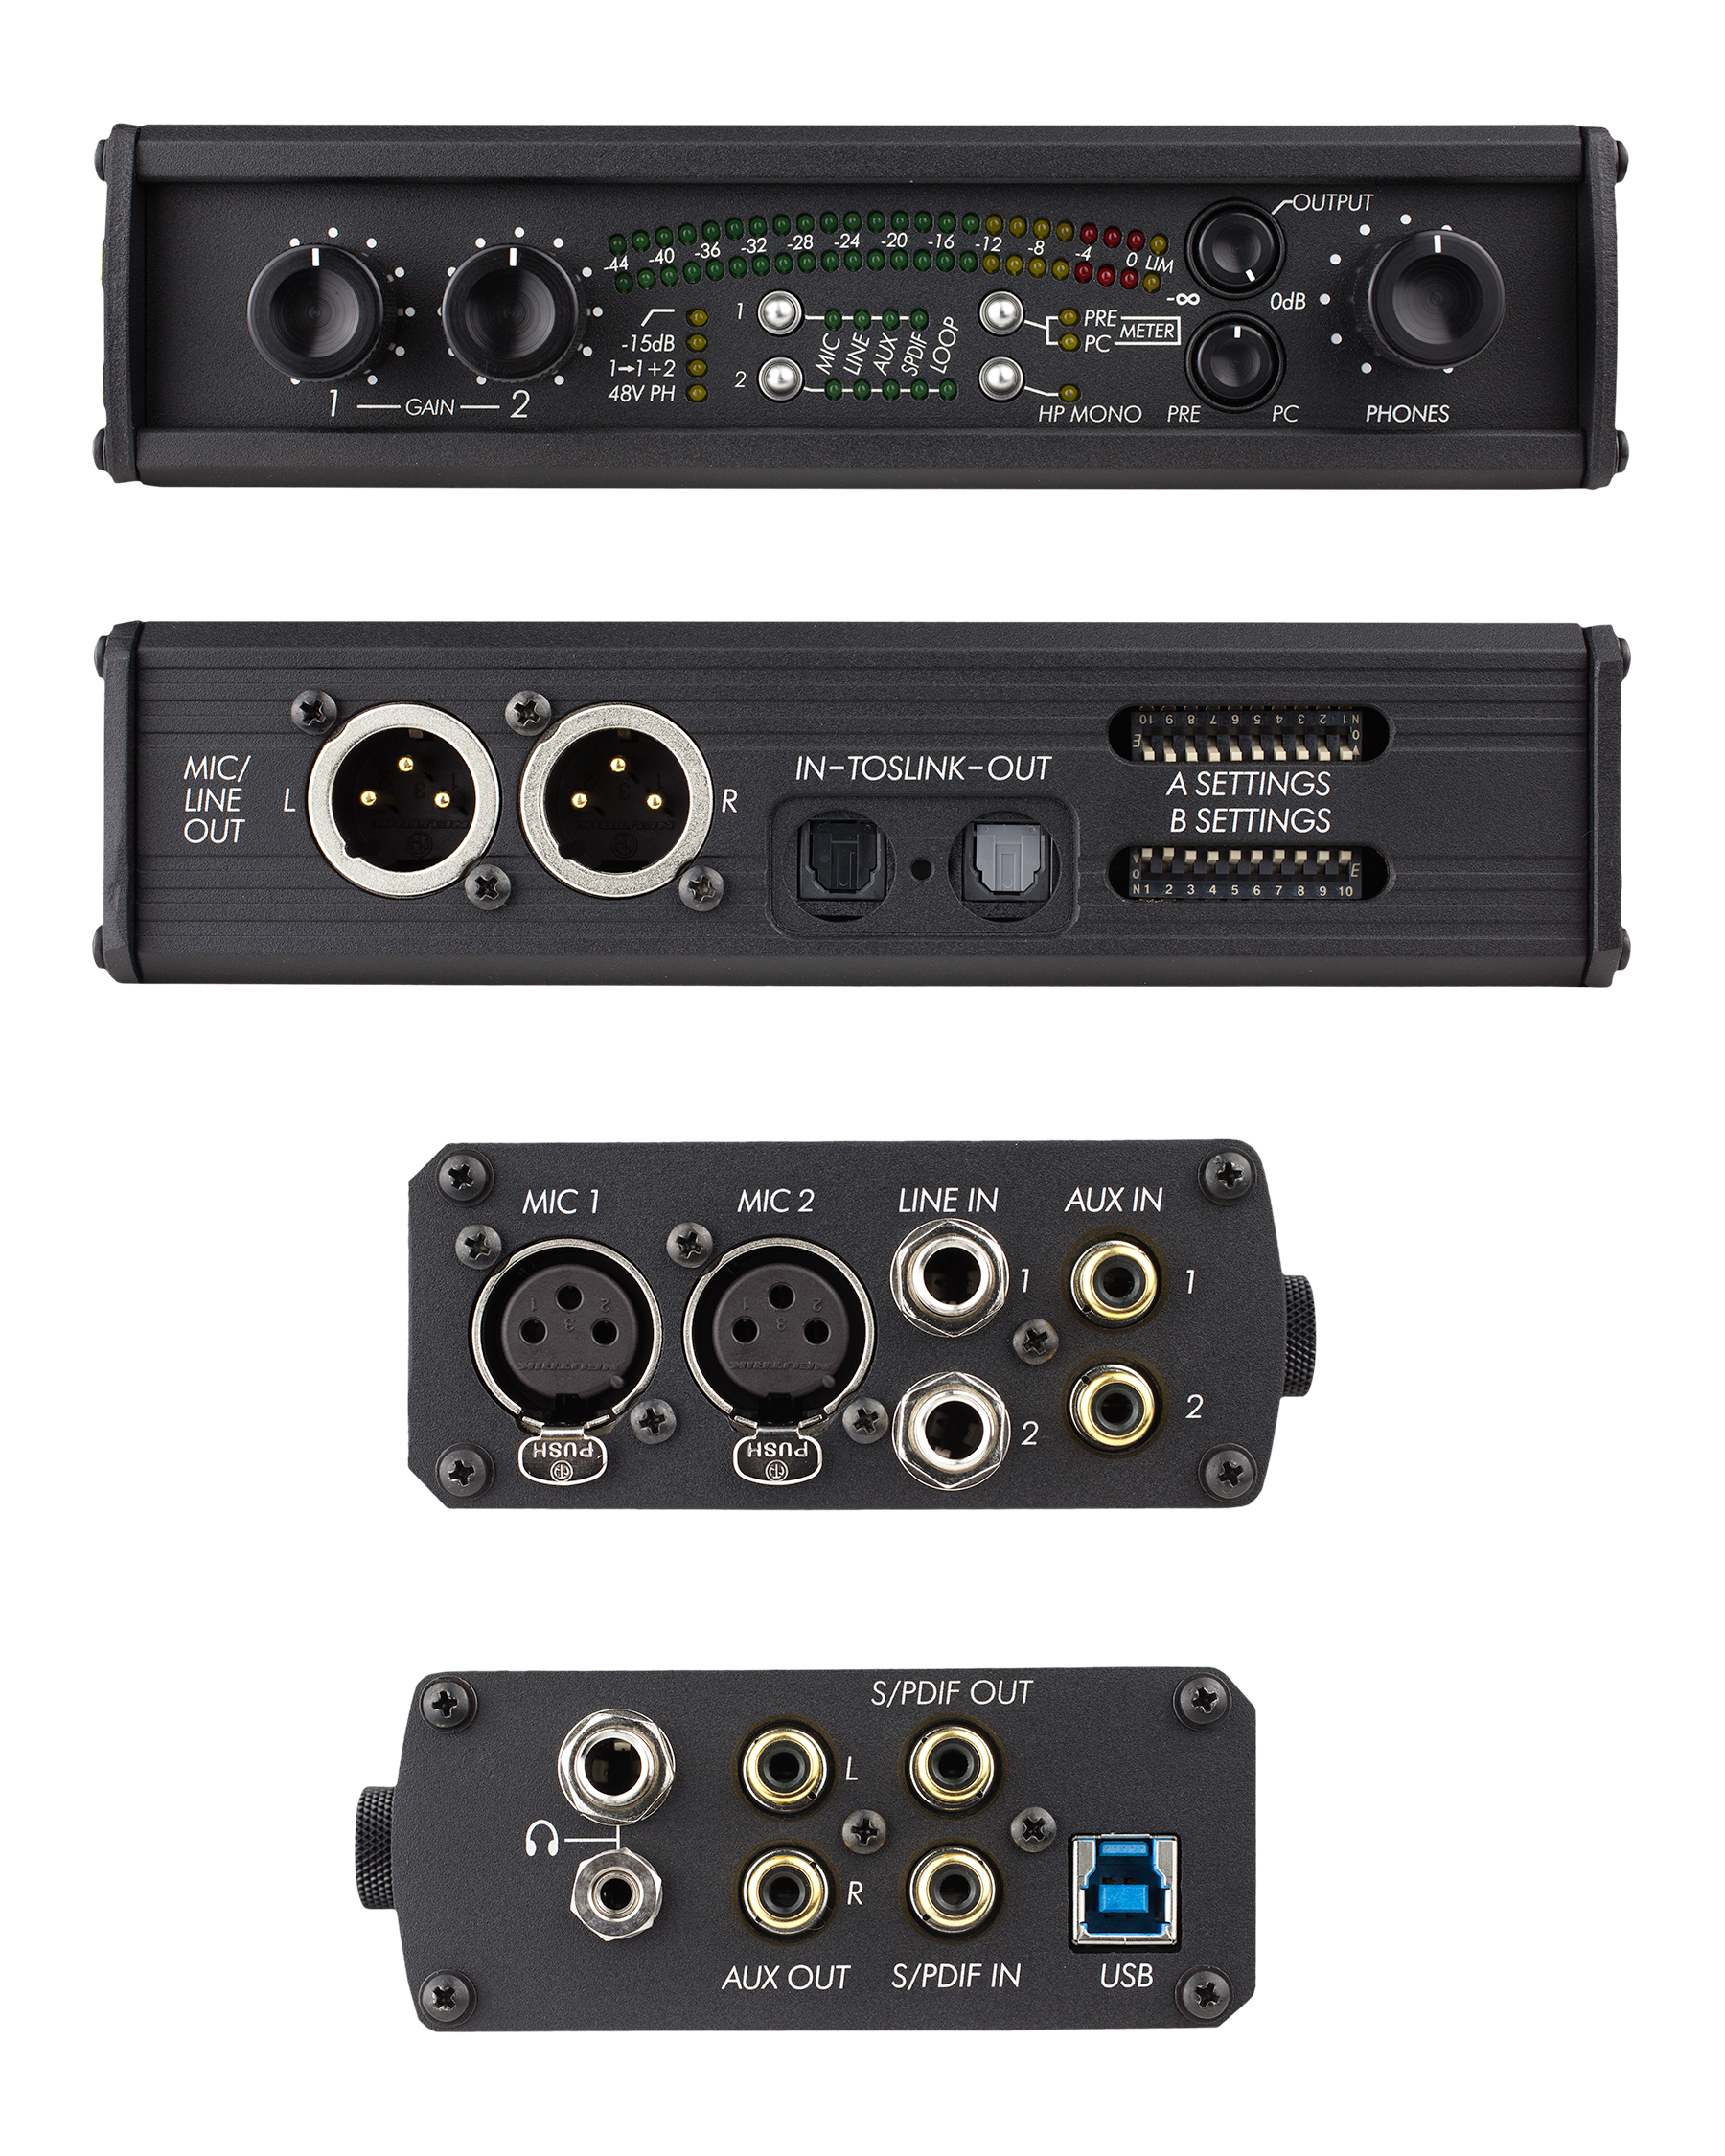 SOUND DEVICES USBPRE 2 AUDIO WINDOWS 7 DRIVER DOWNLOAD